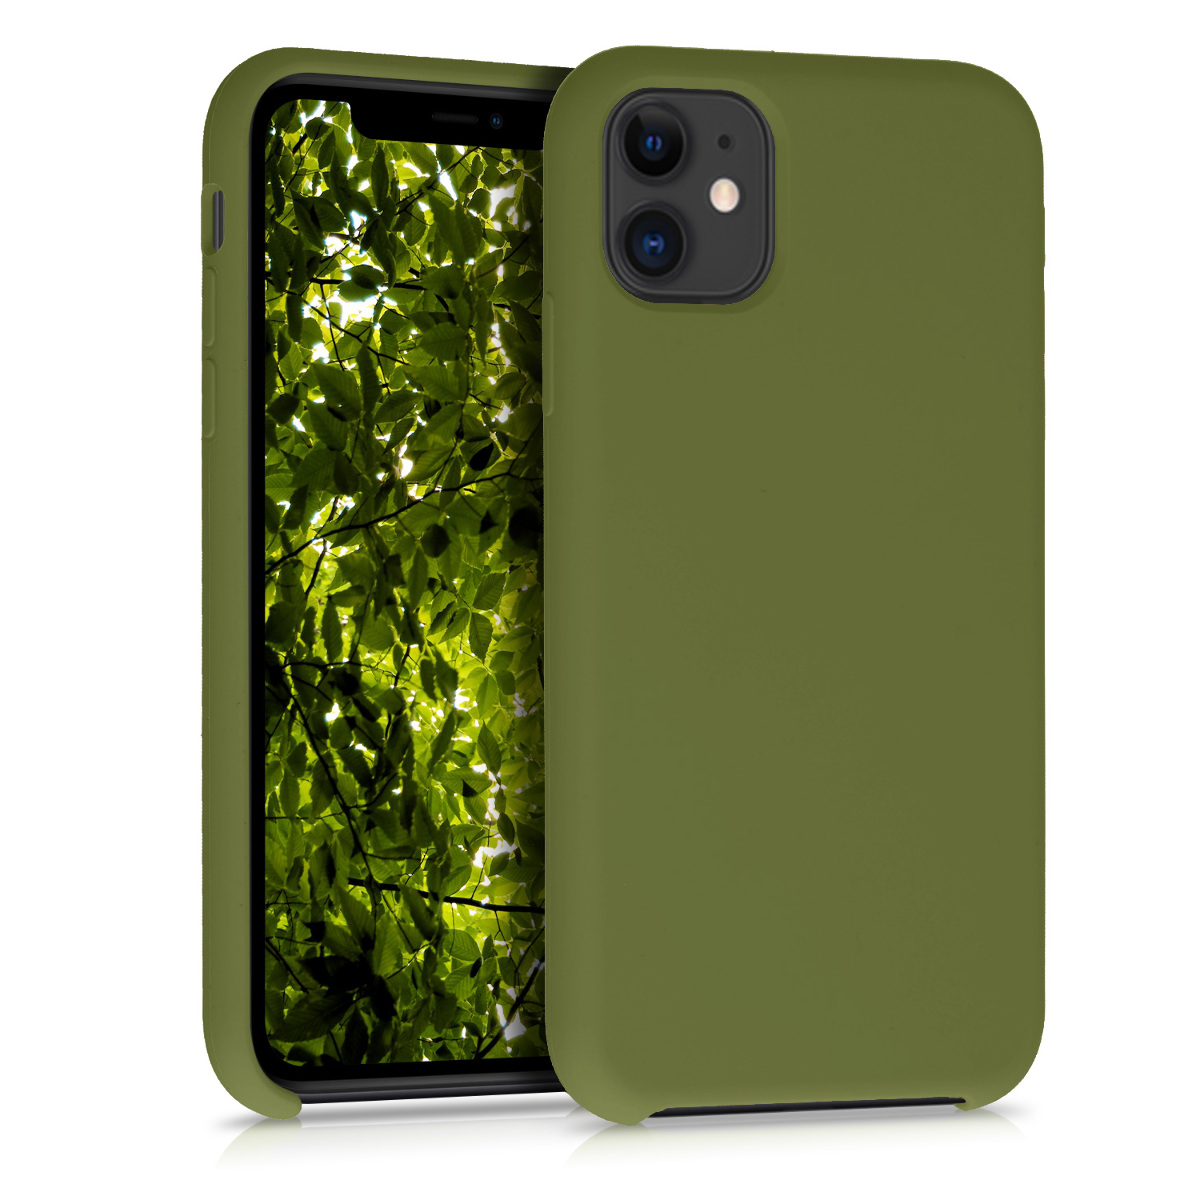 KW Θήκη Σιλικόνης iPhone 11 - Soft Flexible Rubber - Pale Olive Green (49724.148)